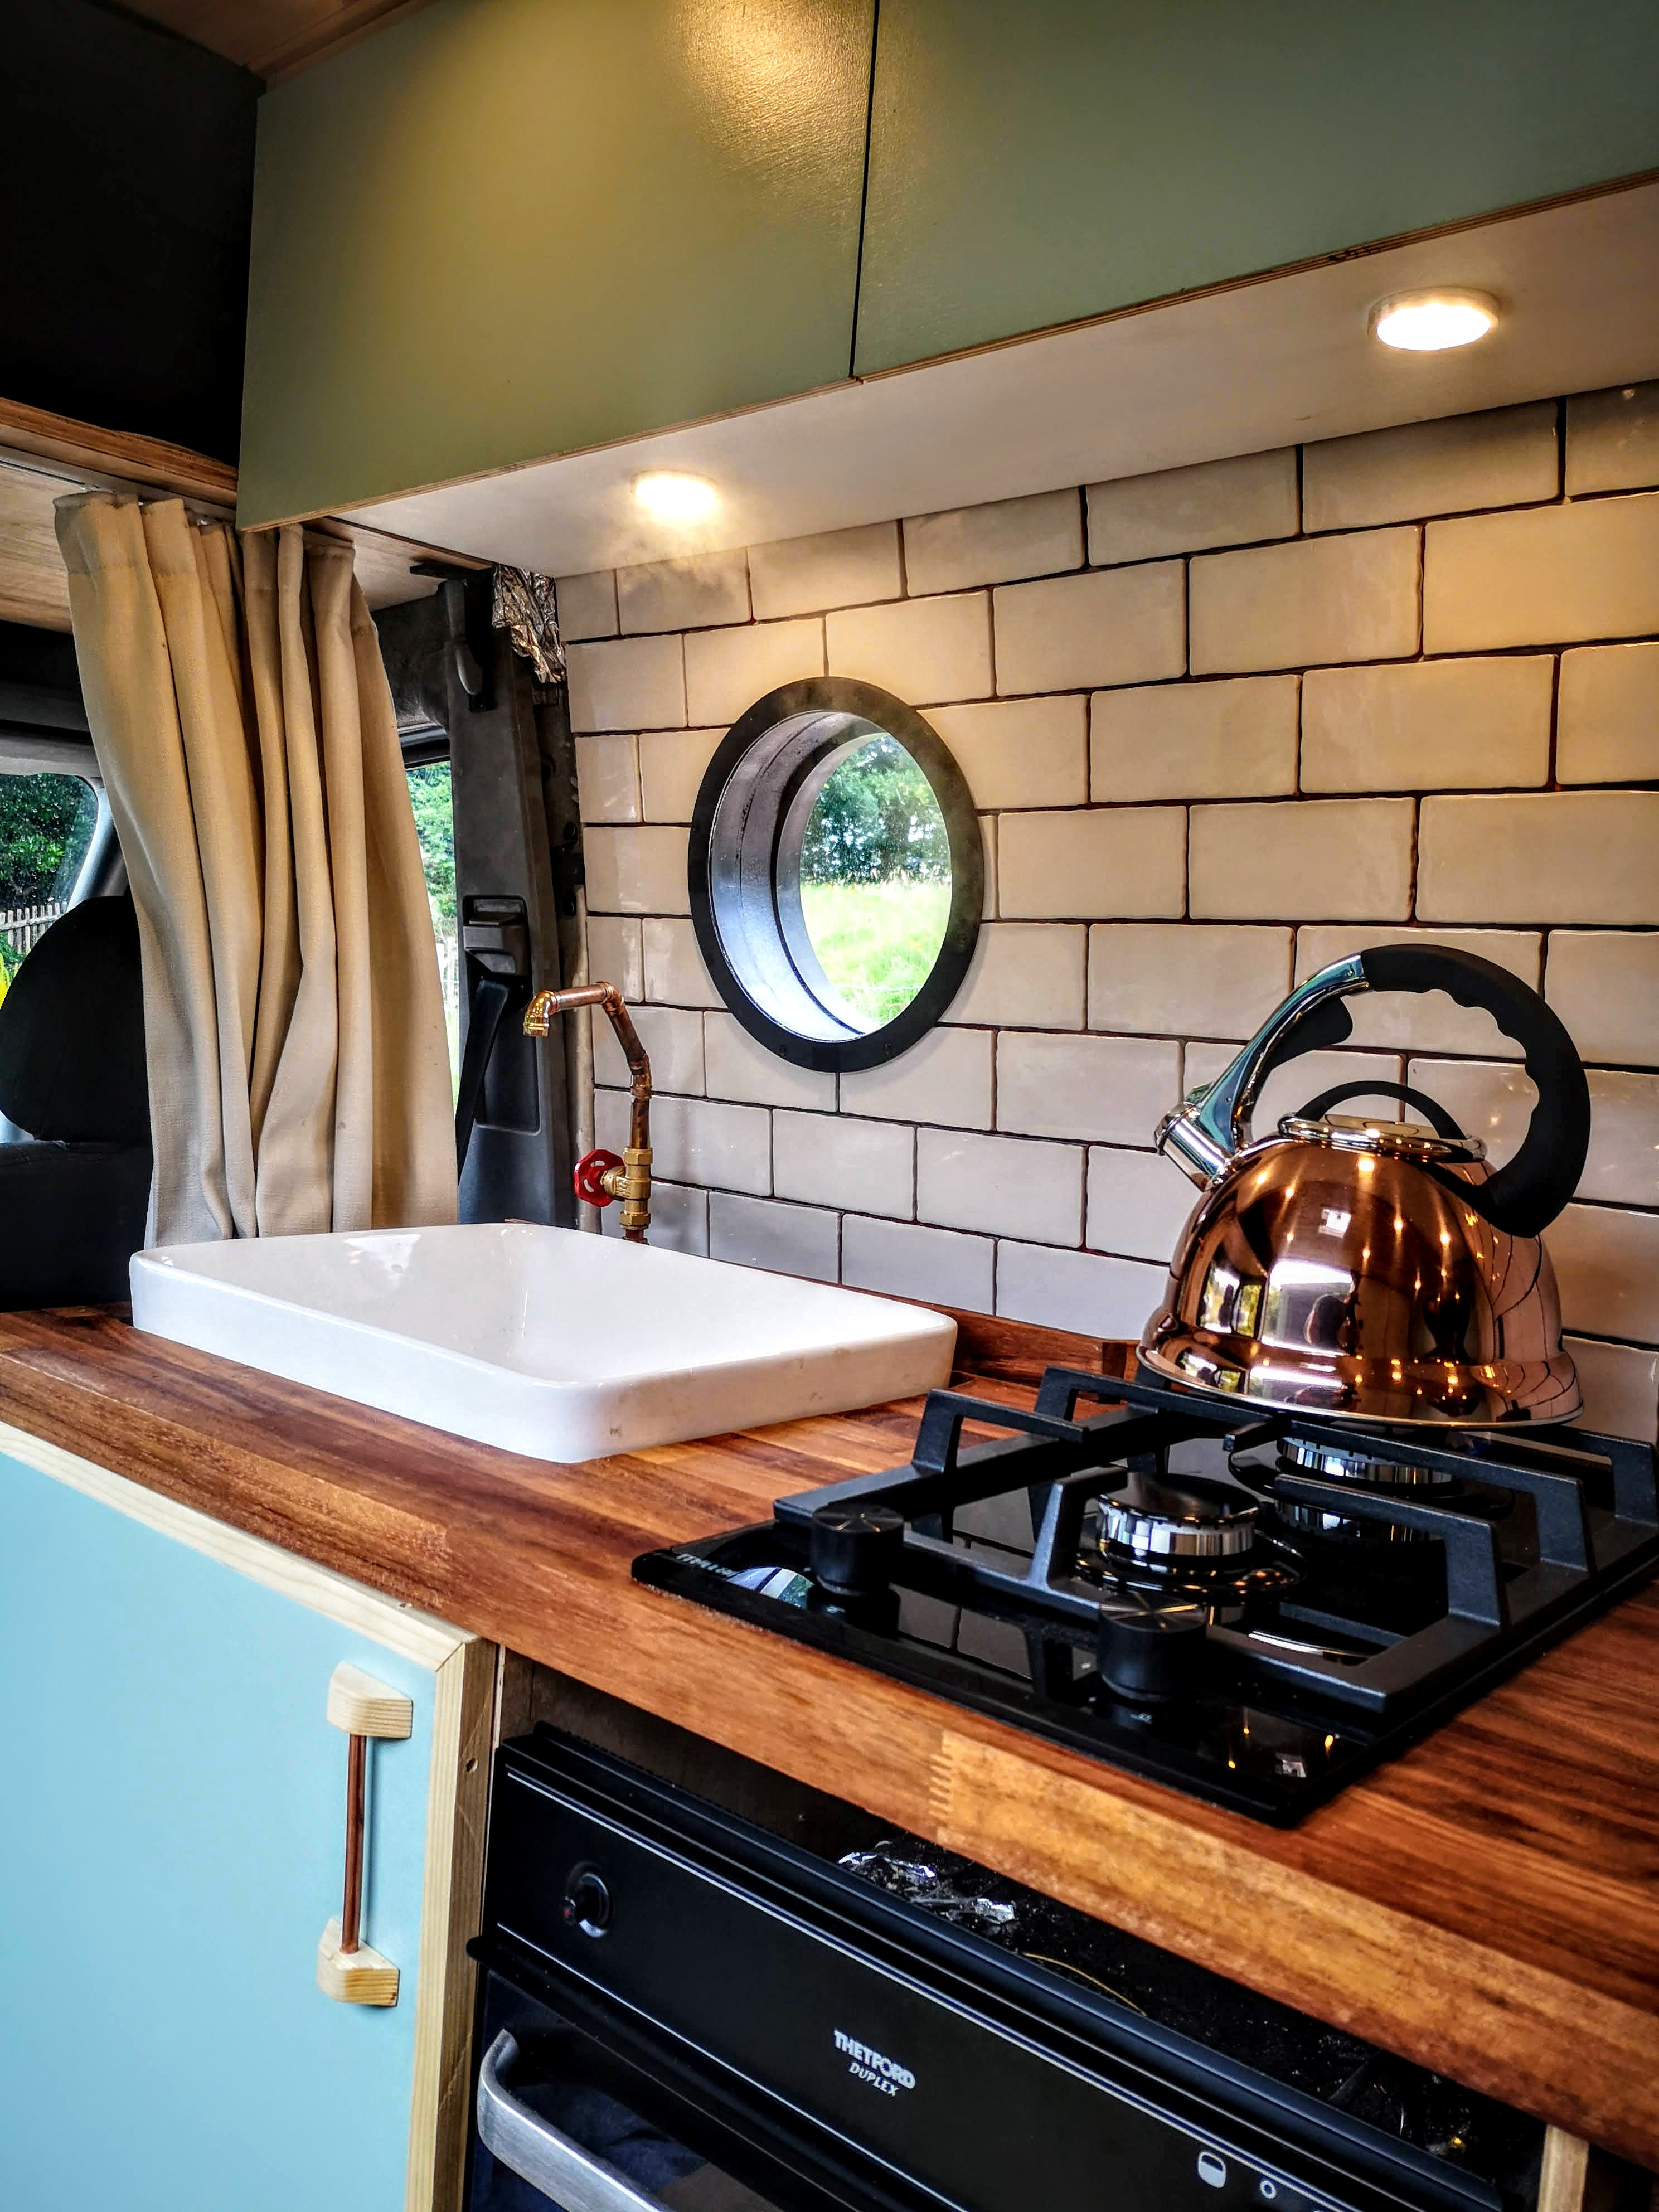 Large kitchen with Porcelain sink, 2 burner stove, full Oven, Fridge Freezer, Running water, and even a gorgeous view from the sidewindow. Mercedes-Benz 313 Sprinter LWB Motorhome 2014